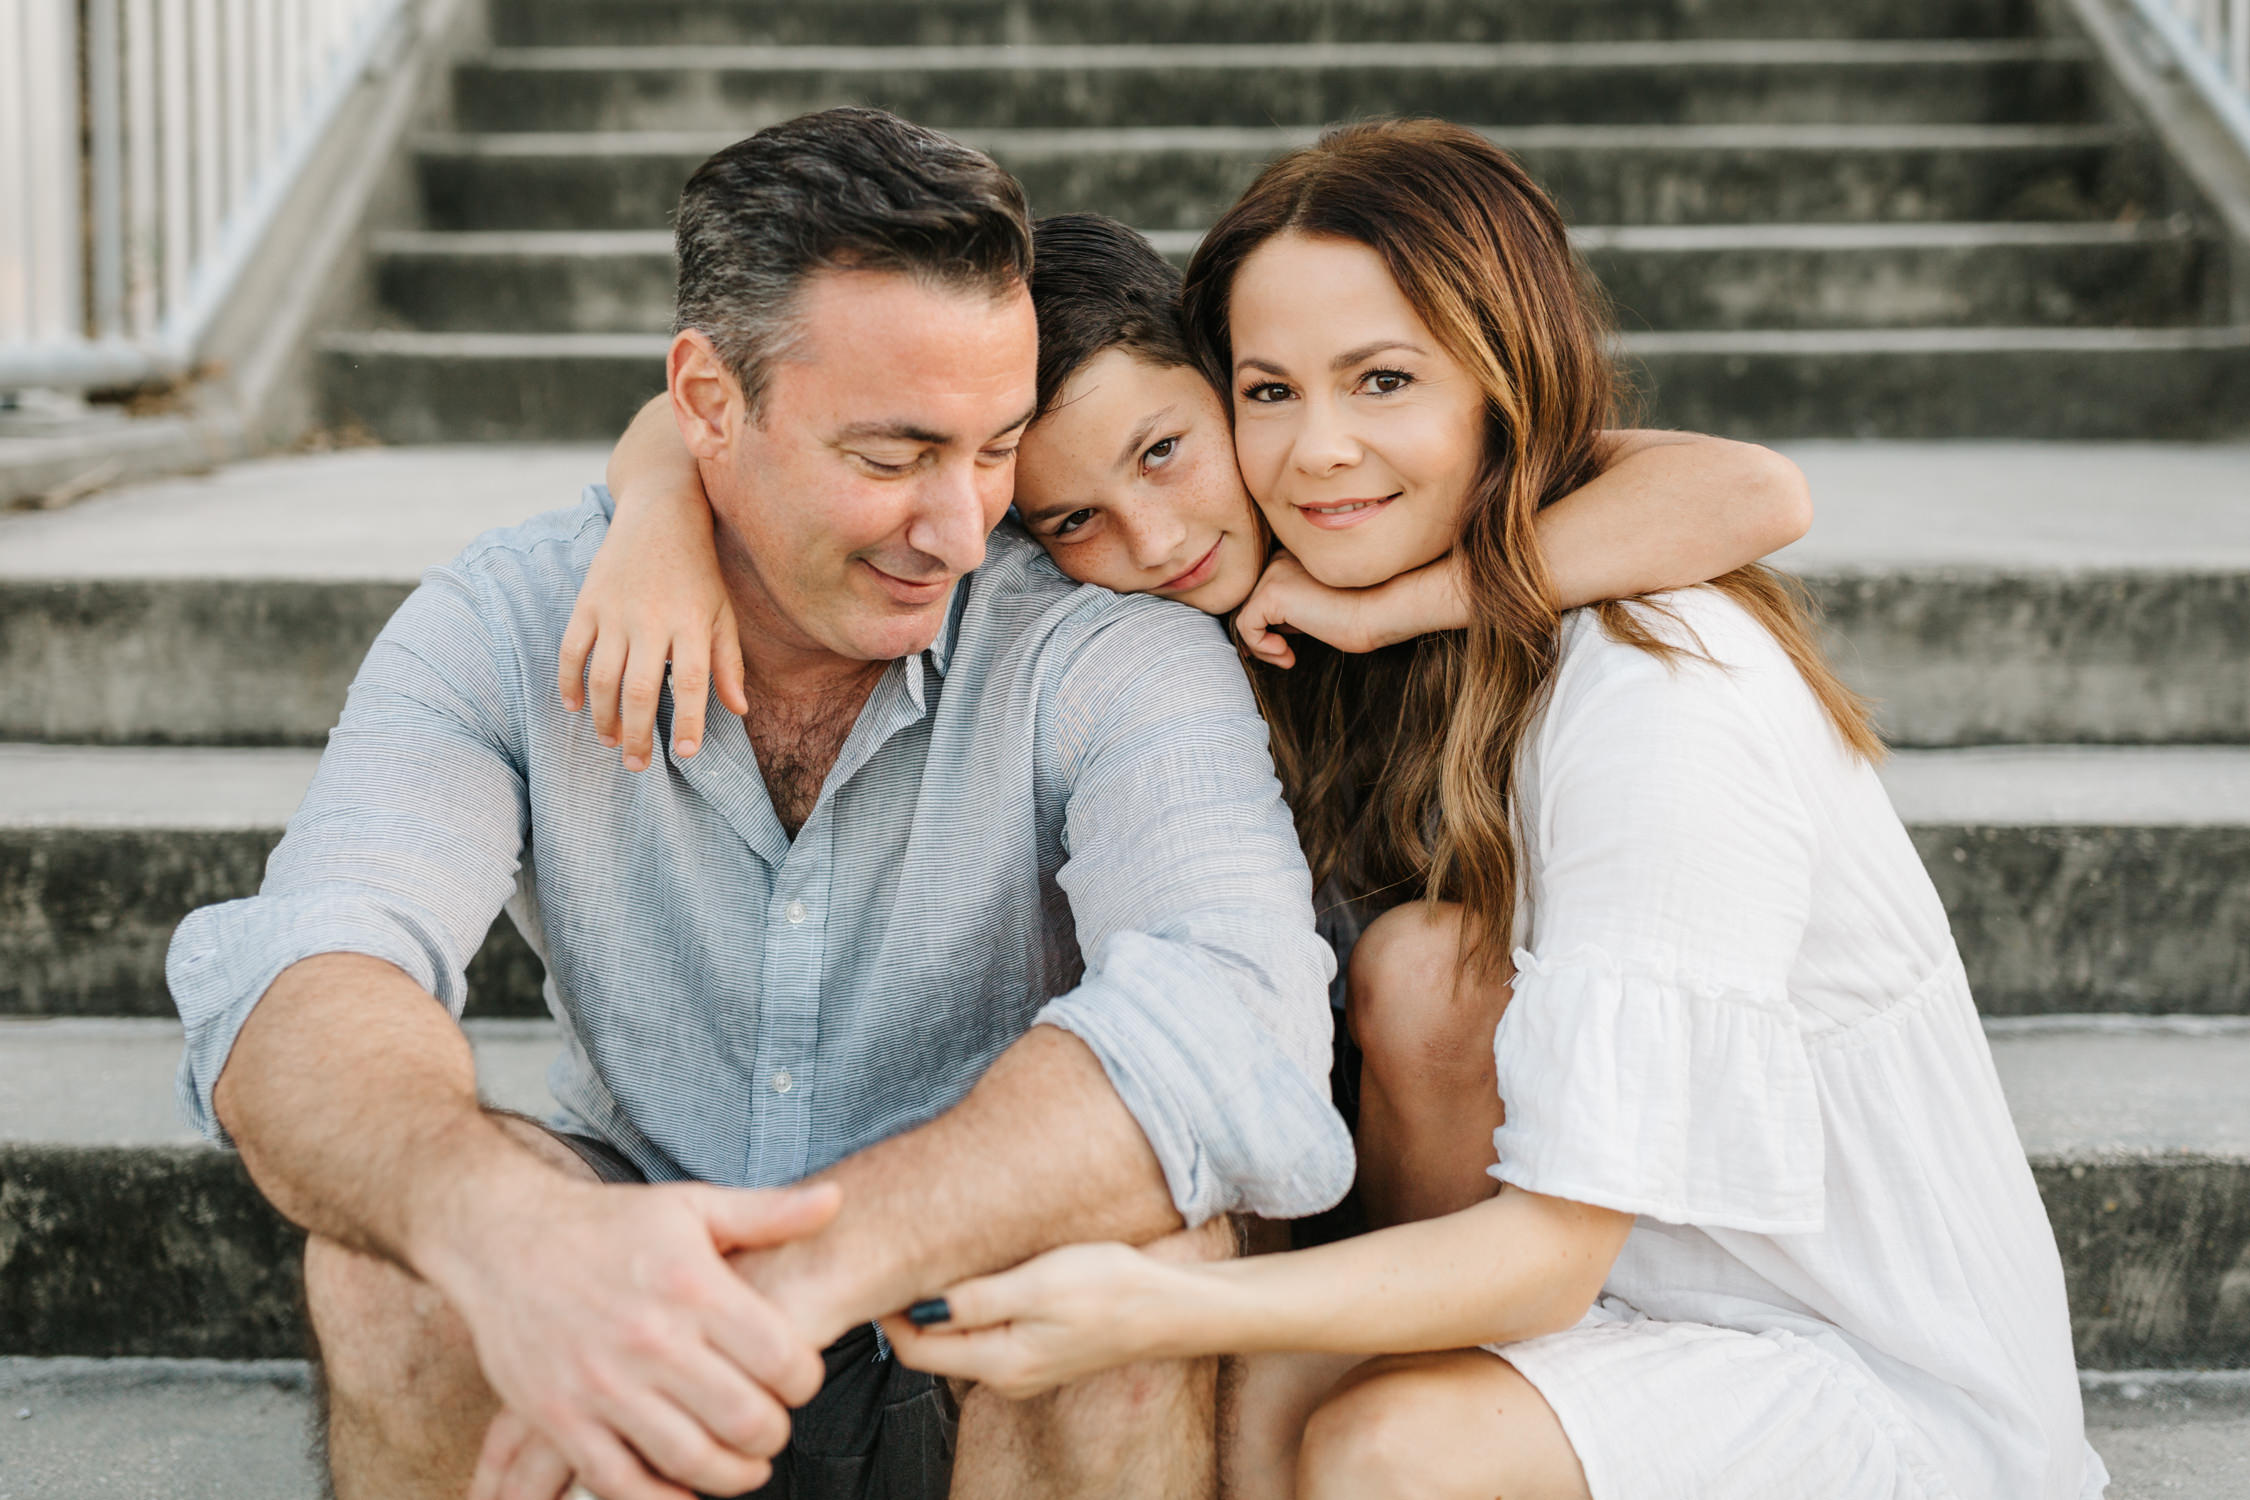 tampa-family-lifestyle-photographer-candid-natural-19